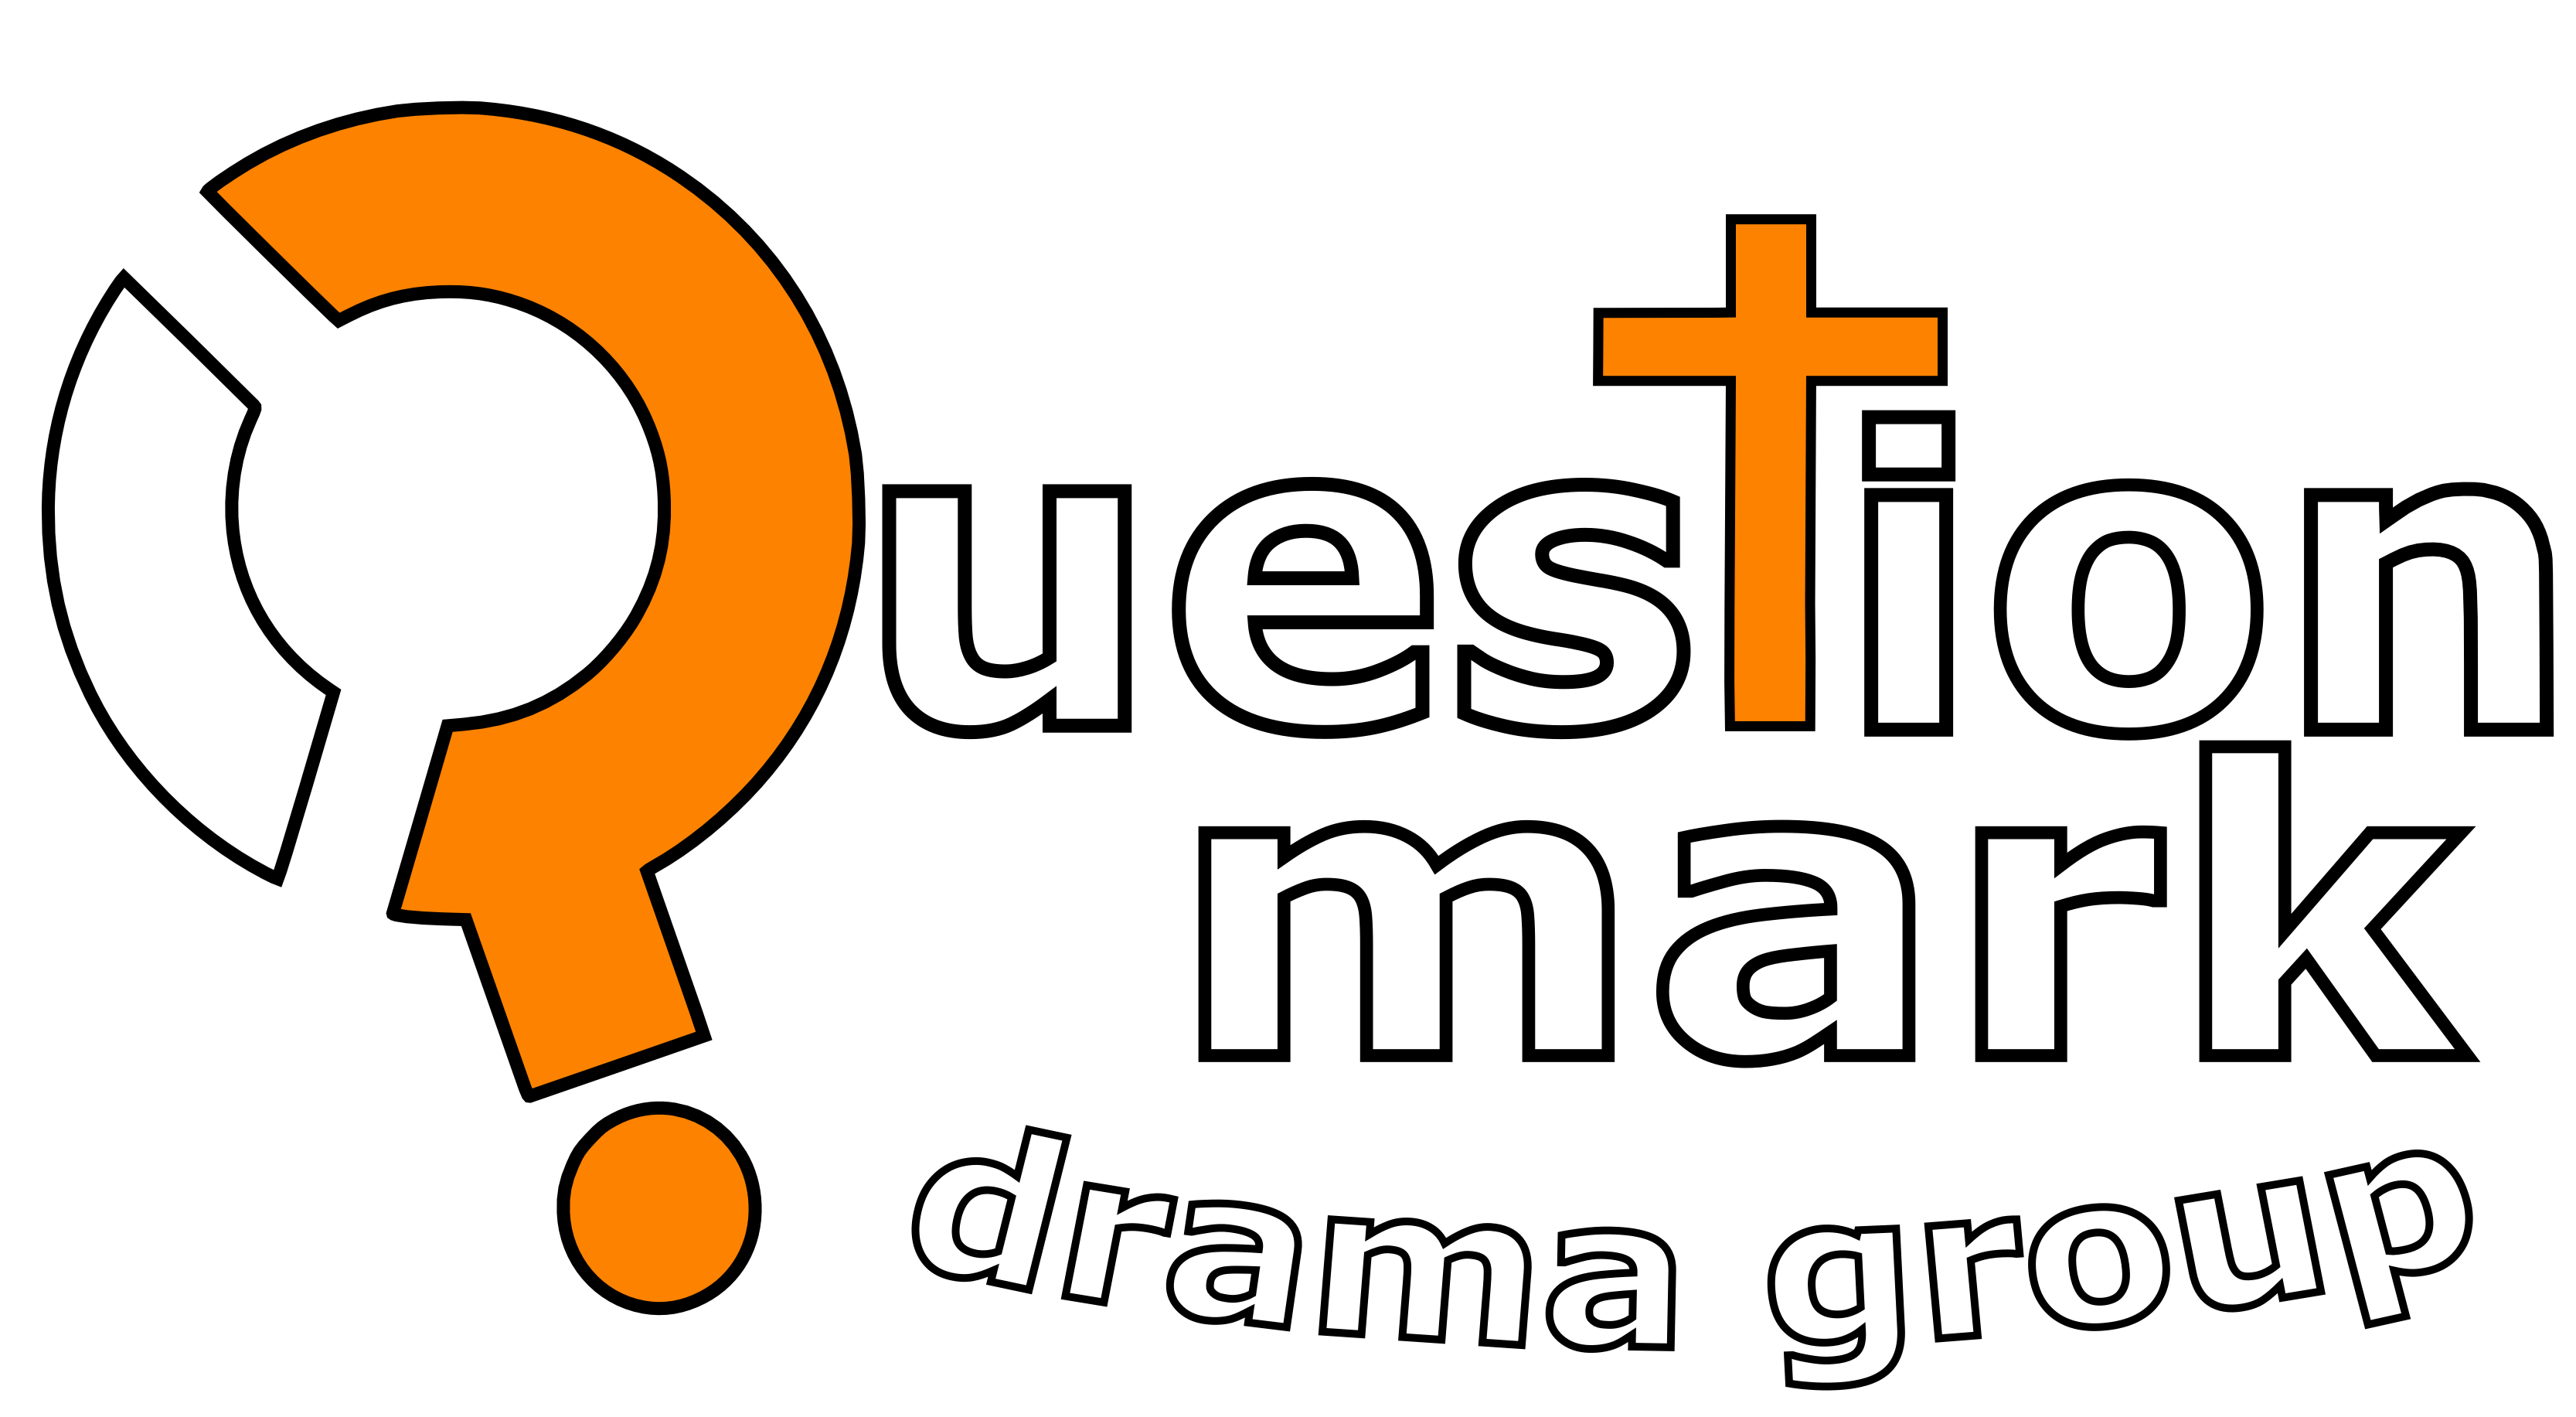 question mark logo final 1 002